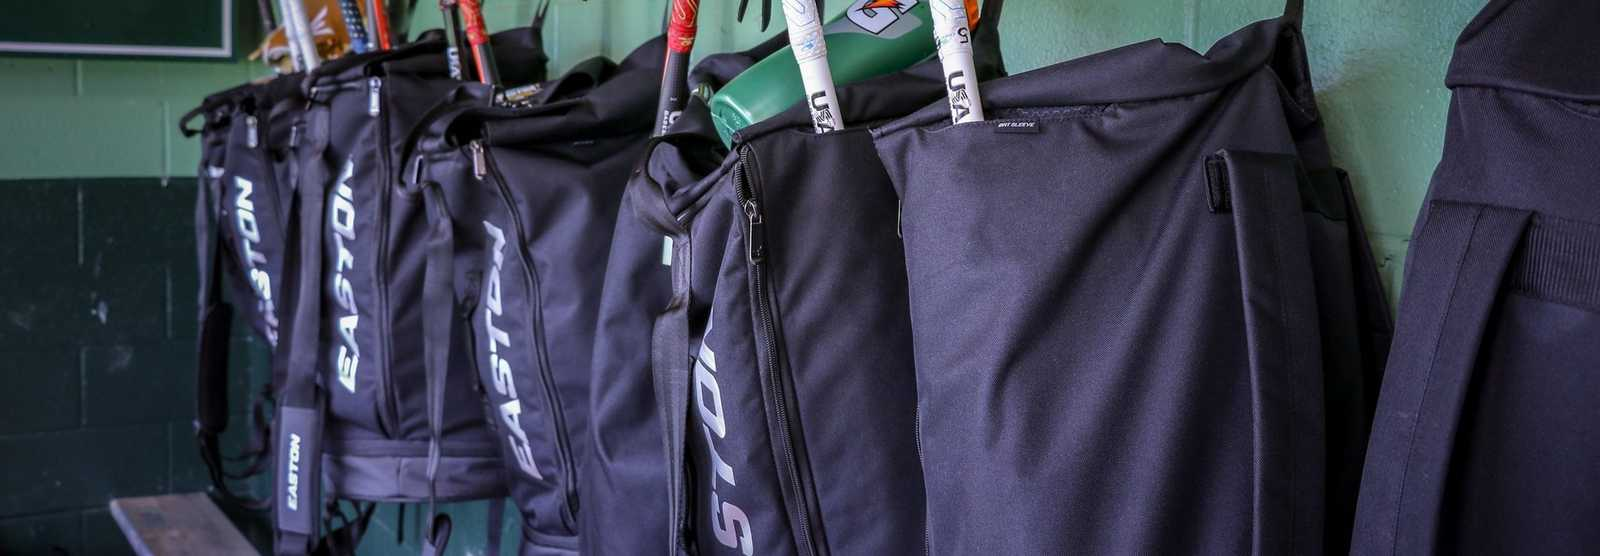 2018-baseball-bags-backpacks